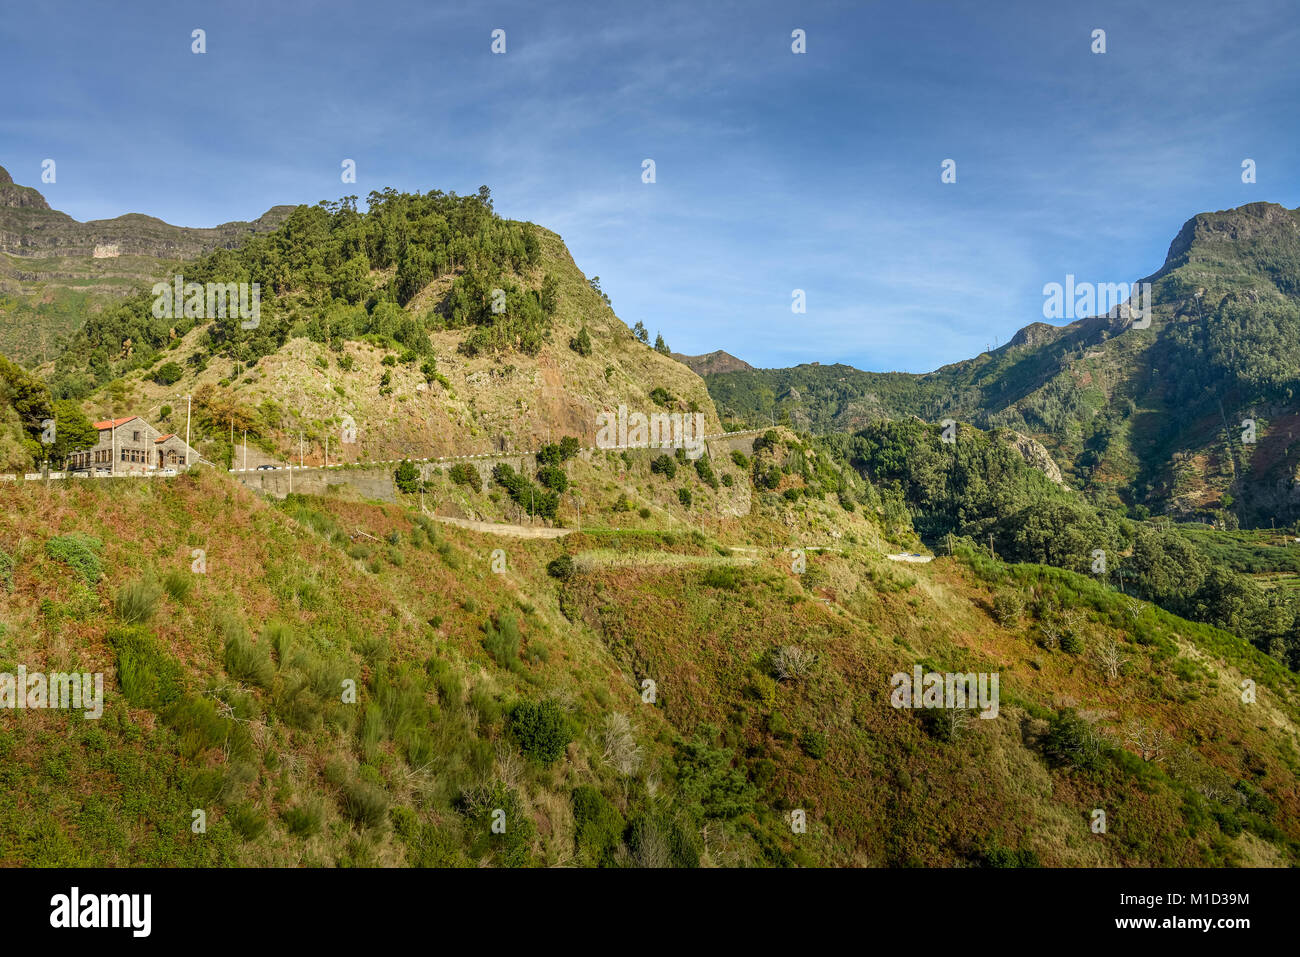 Pass Road, Encuemada, Central Mountains, Madeira, Portugal, Passstrasse, Zentralgebirge - Stock Image